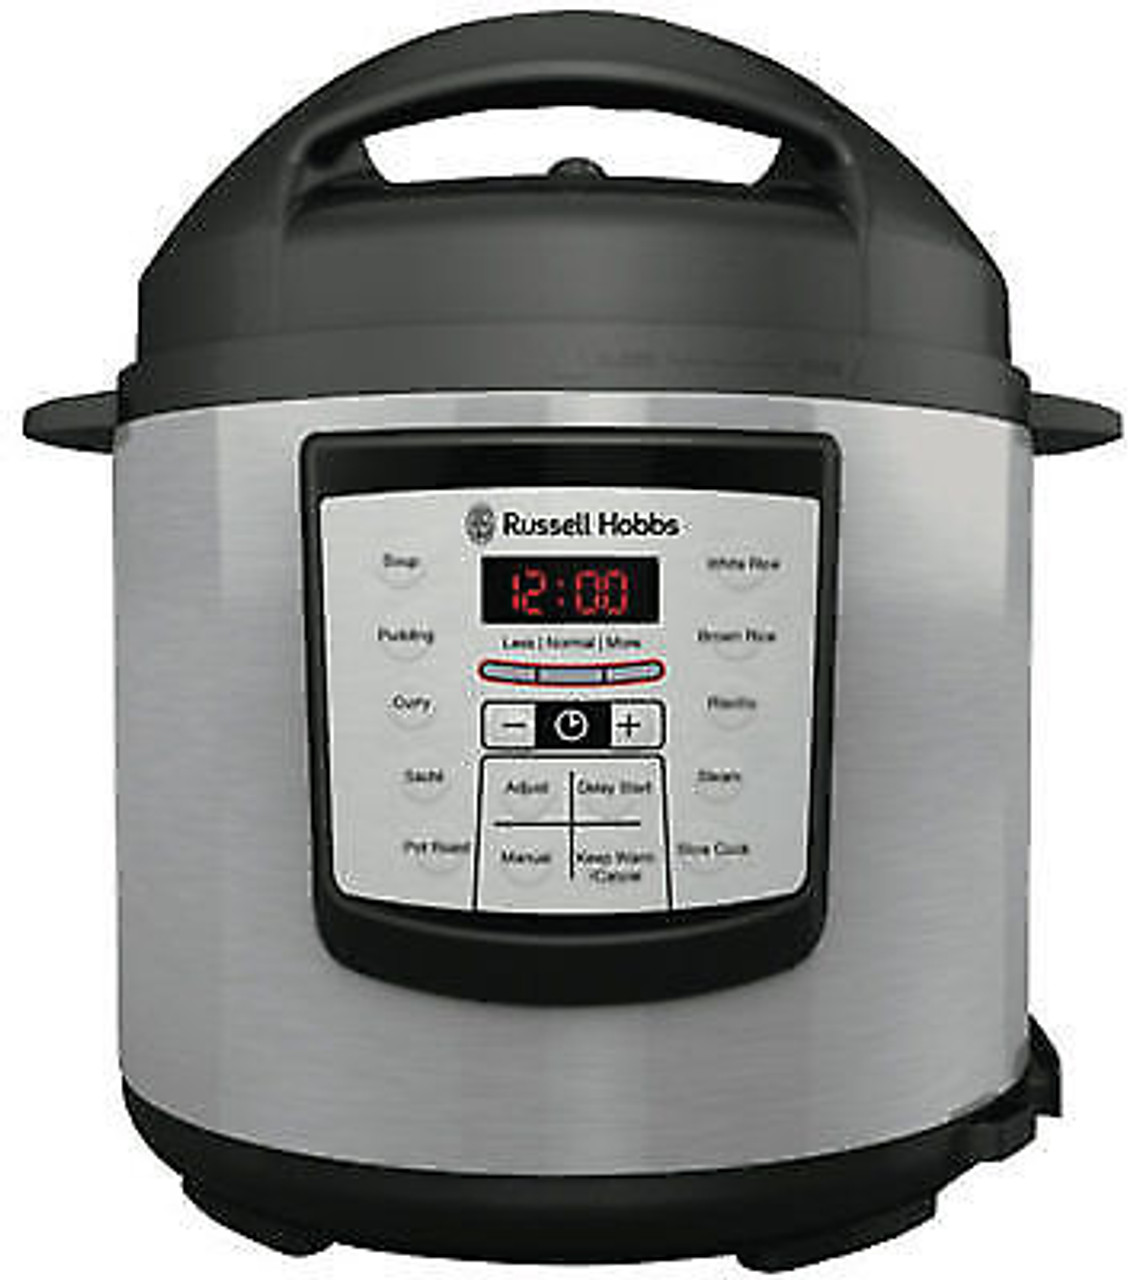 Russell Hobbs RHPC1000 Express Chef 6L Digital Multi Cooker - Silver